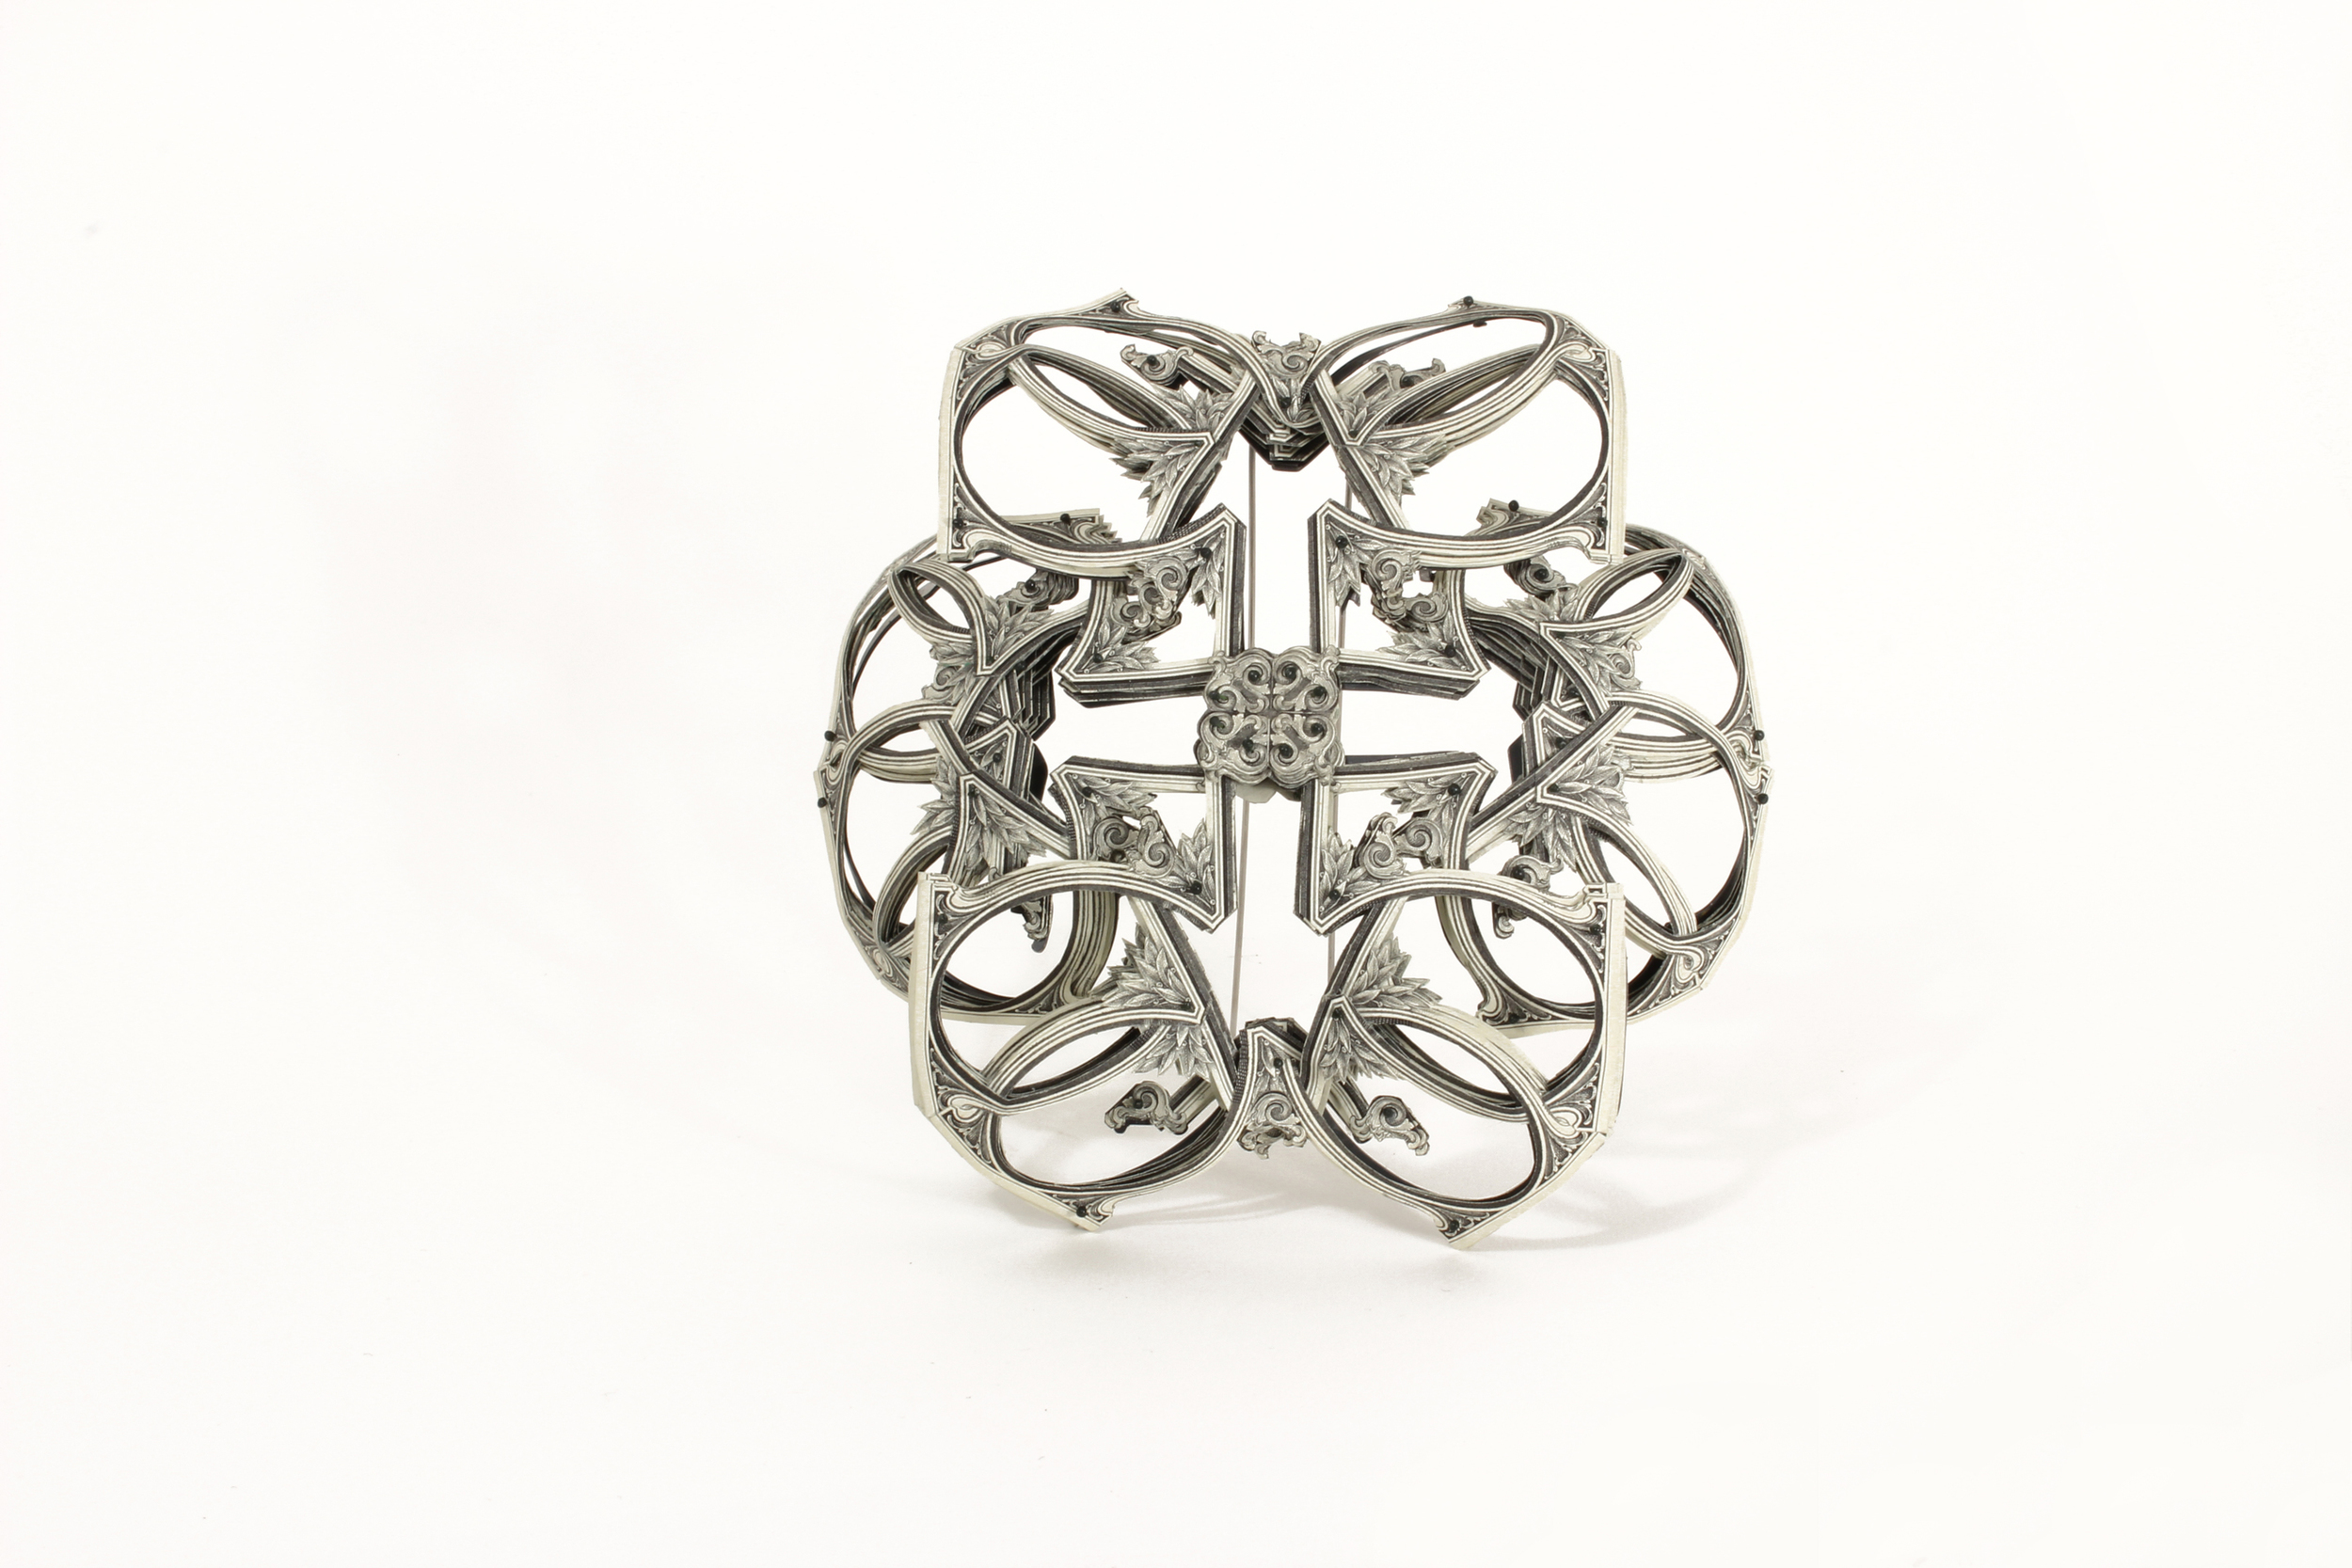 $104.00 Currency Converted  | Brooch | US Dollars, Monofilament, Silver, and Surgical Steel | 2015 | Private Collection | 1/1